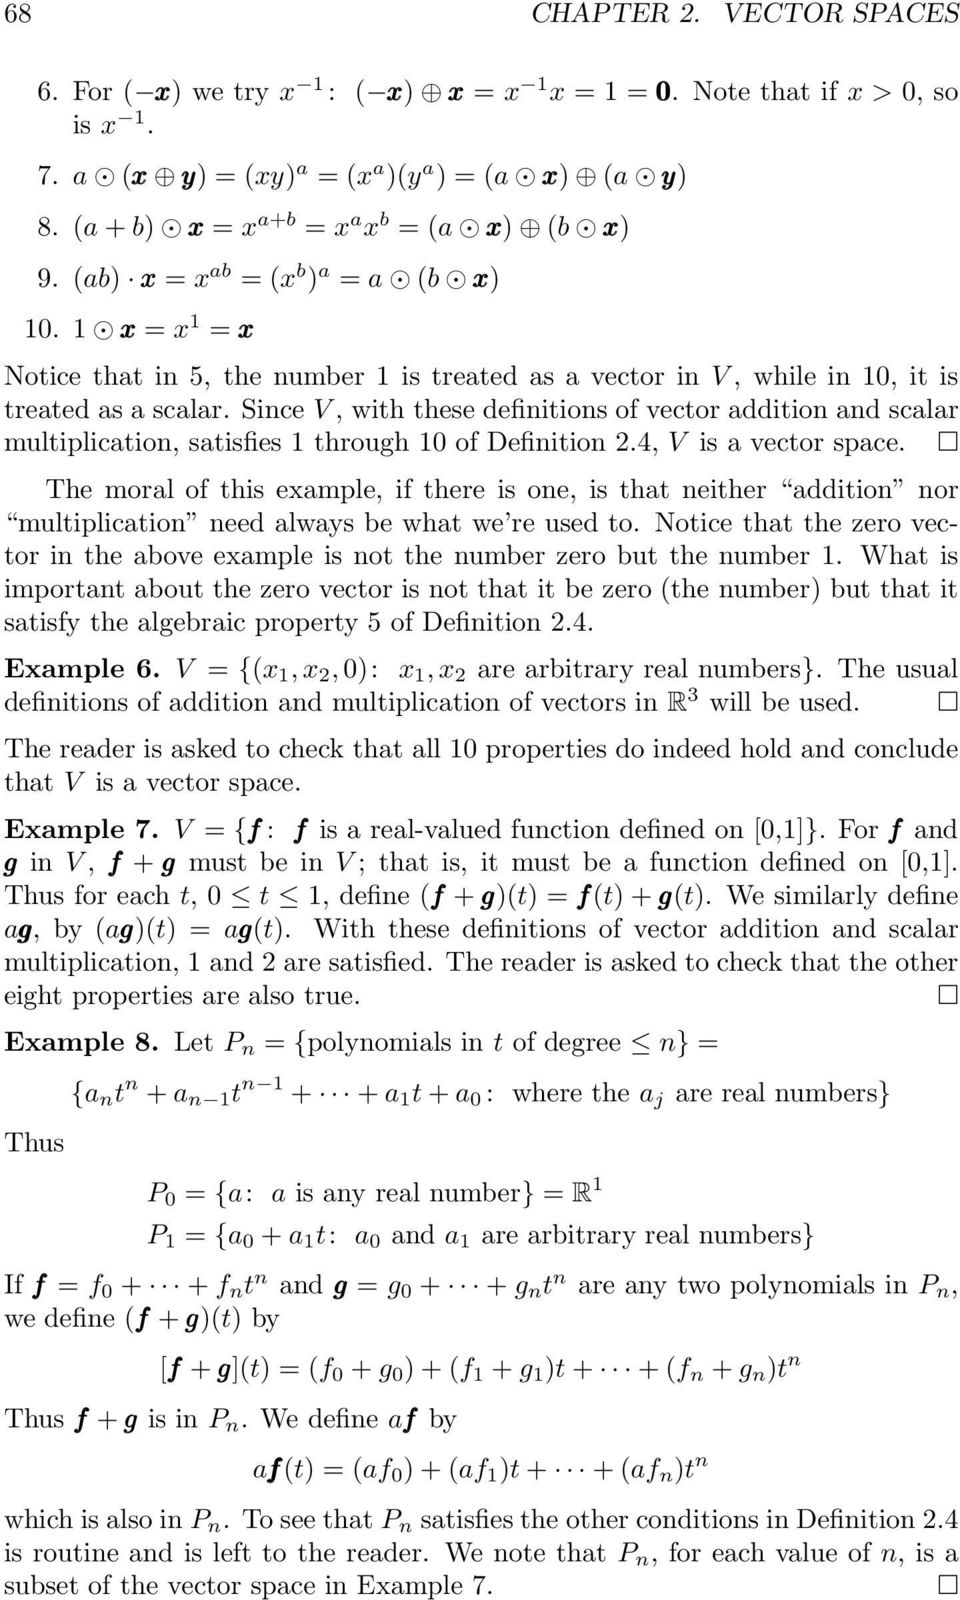 Since V, with these definitions of vector addition and scalar multiplication, satisfies 1 through 10 of Definition 2.4, V is a vector space.